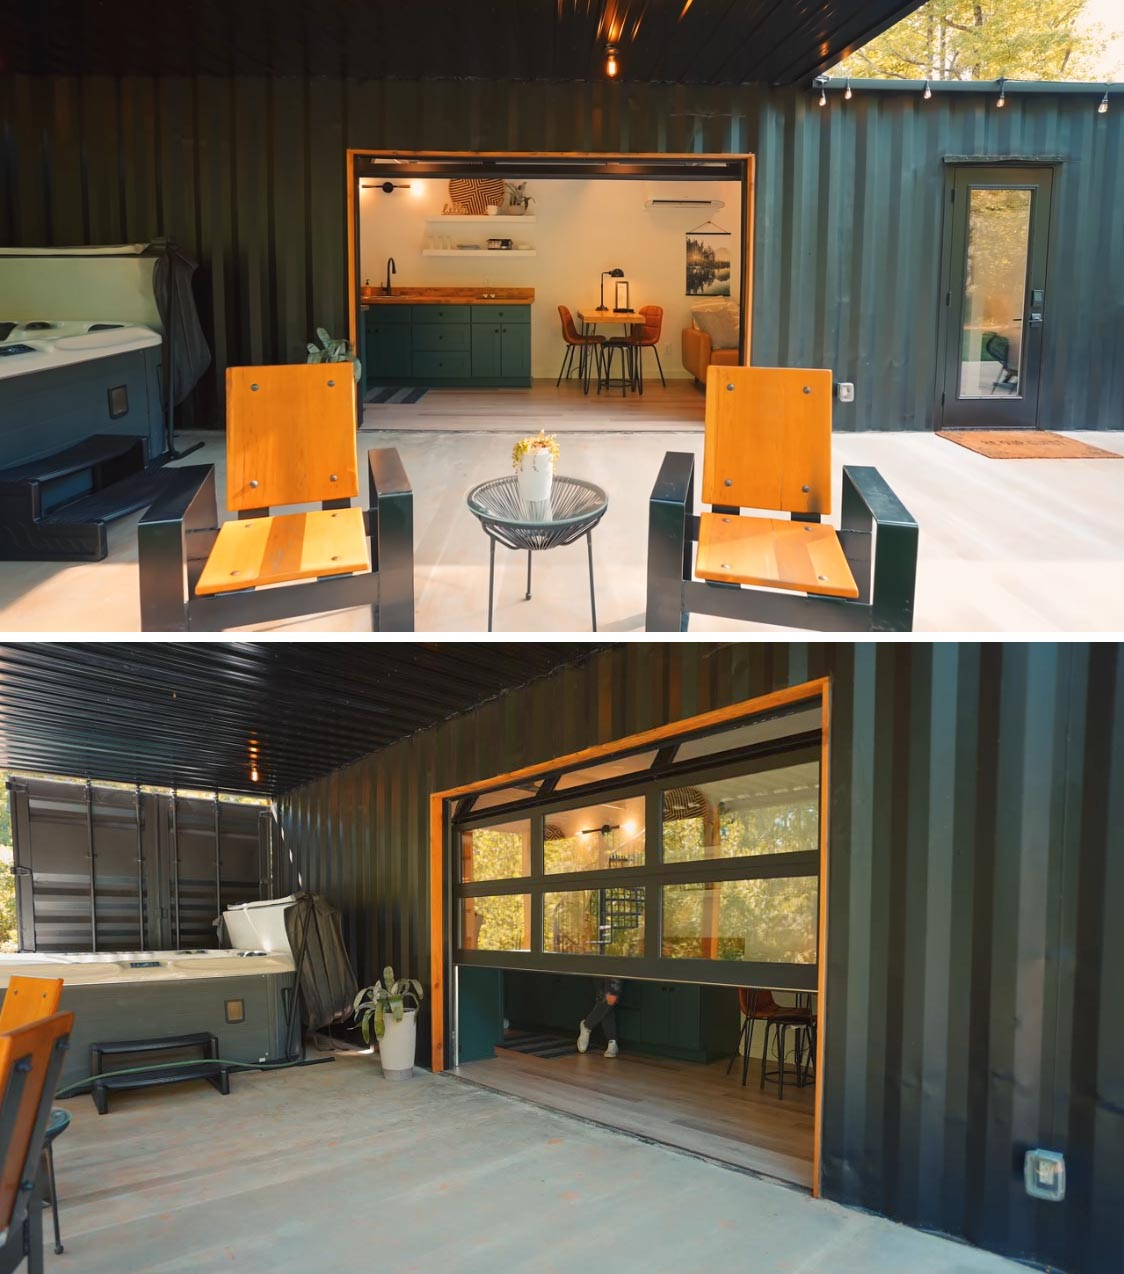 A modern shipping container home with an expansive patio with a hot tub, relaxing seating, and a fire pit area under string lights. A 10 foot working glass garage door opens up the interior to the patio, expanding the living space.